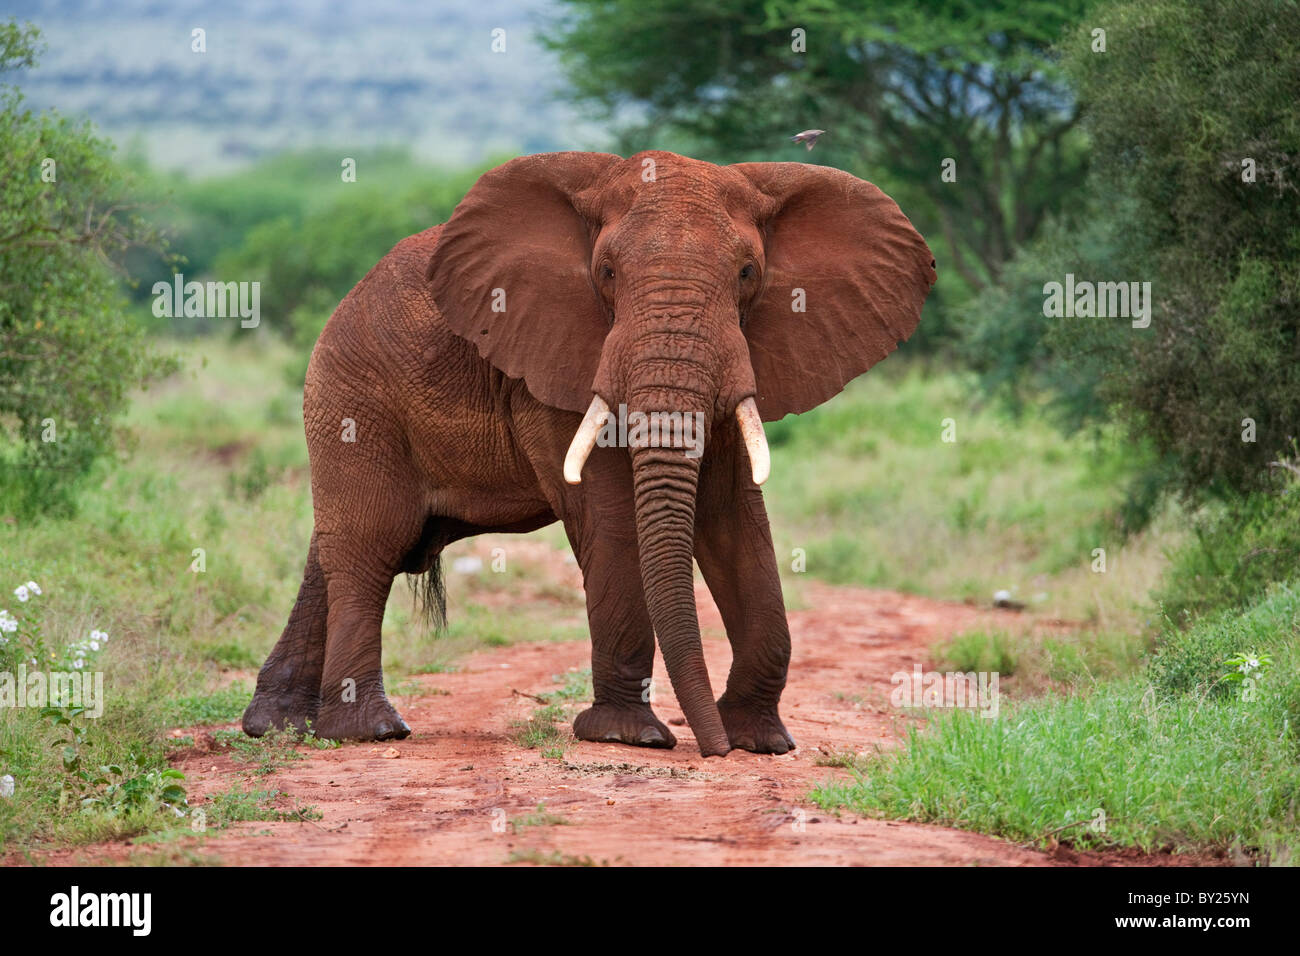 An elephant covered in red dust blocks a track in Kenya  s Tsavo West National Park. - Stock Image